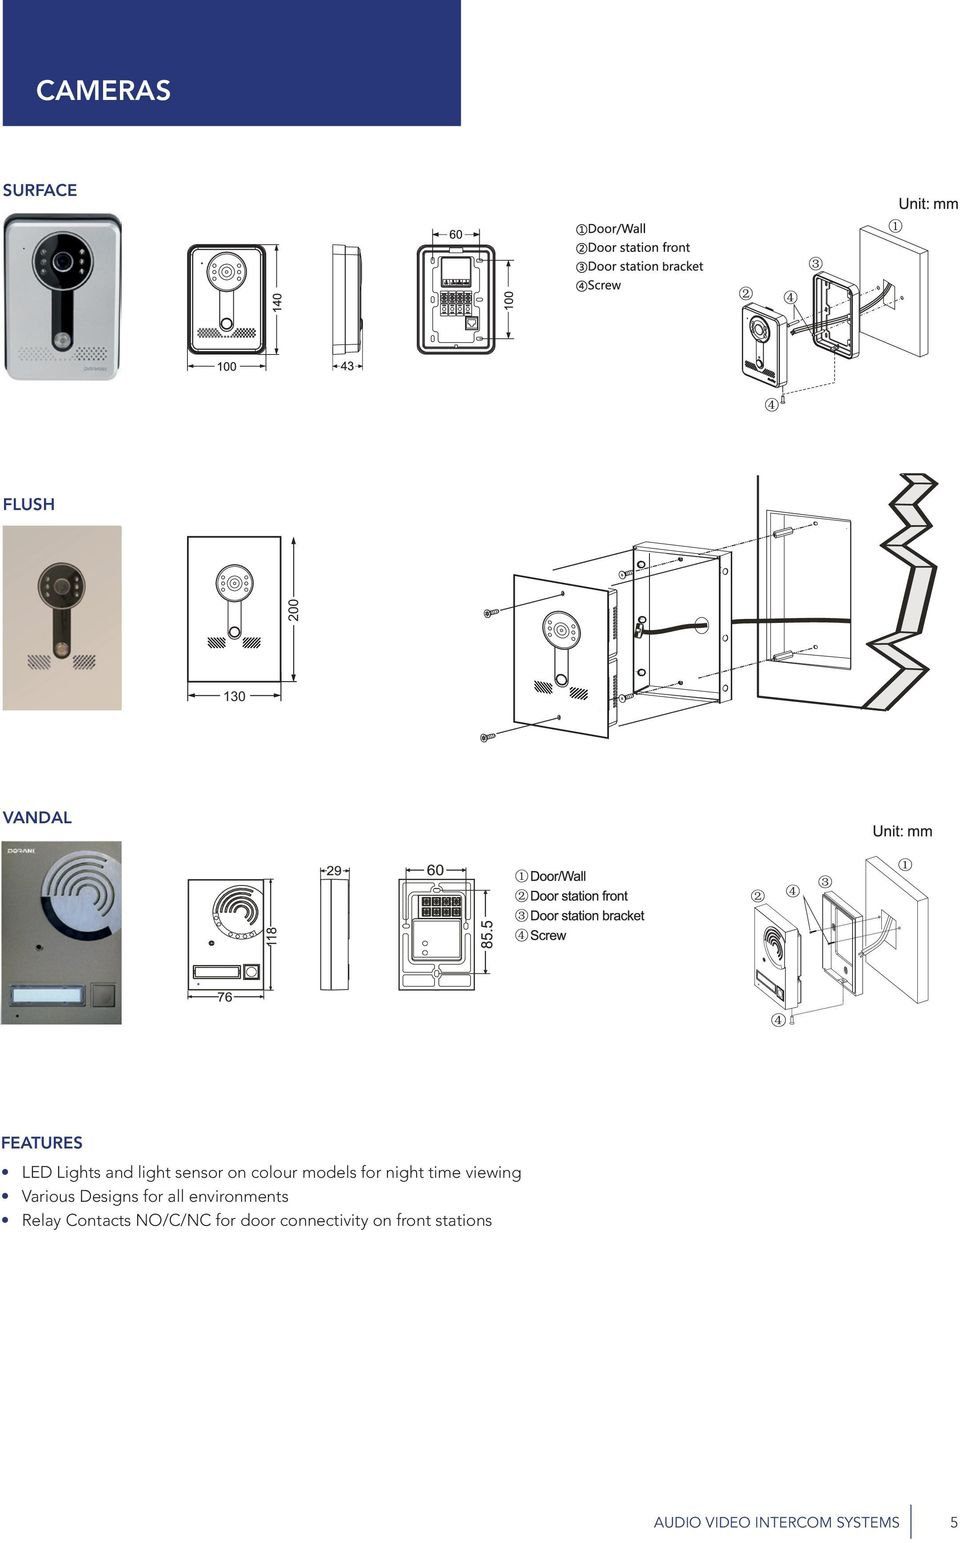 Designs for all environments Relay Contacts NO/C/NC for door